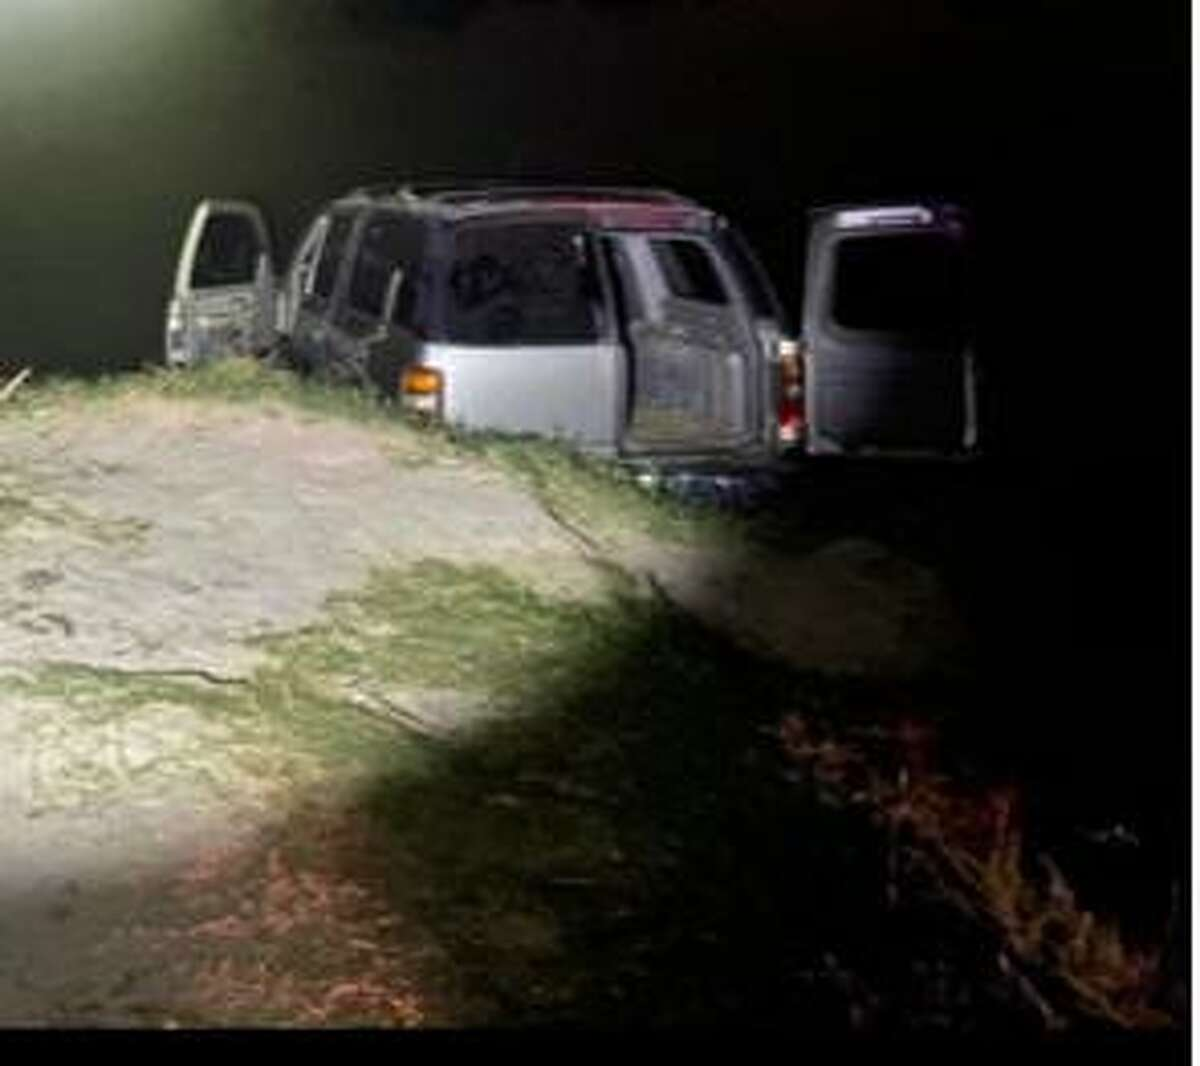 This vehicle drove into the Rio Grande in El Cenizo to avoid apprehension. Authorities seized approximately 300.16 pounds that had an estimated street value of $240,124.